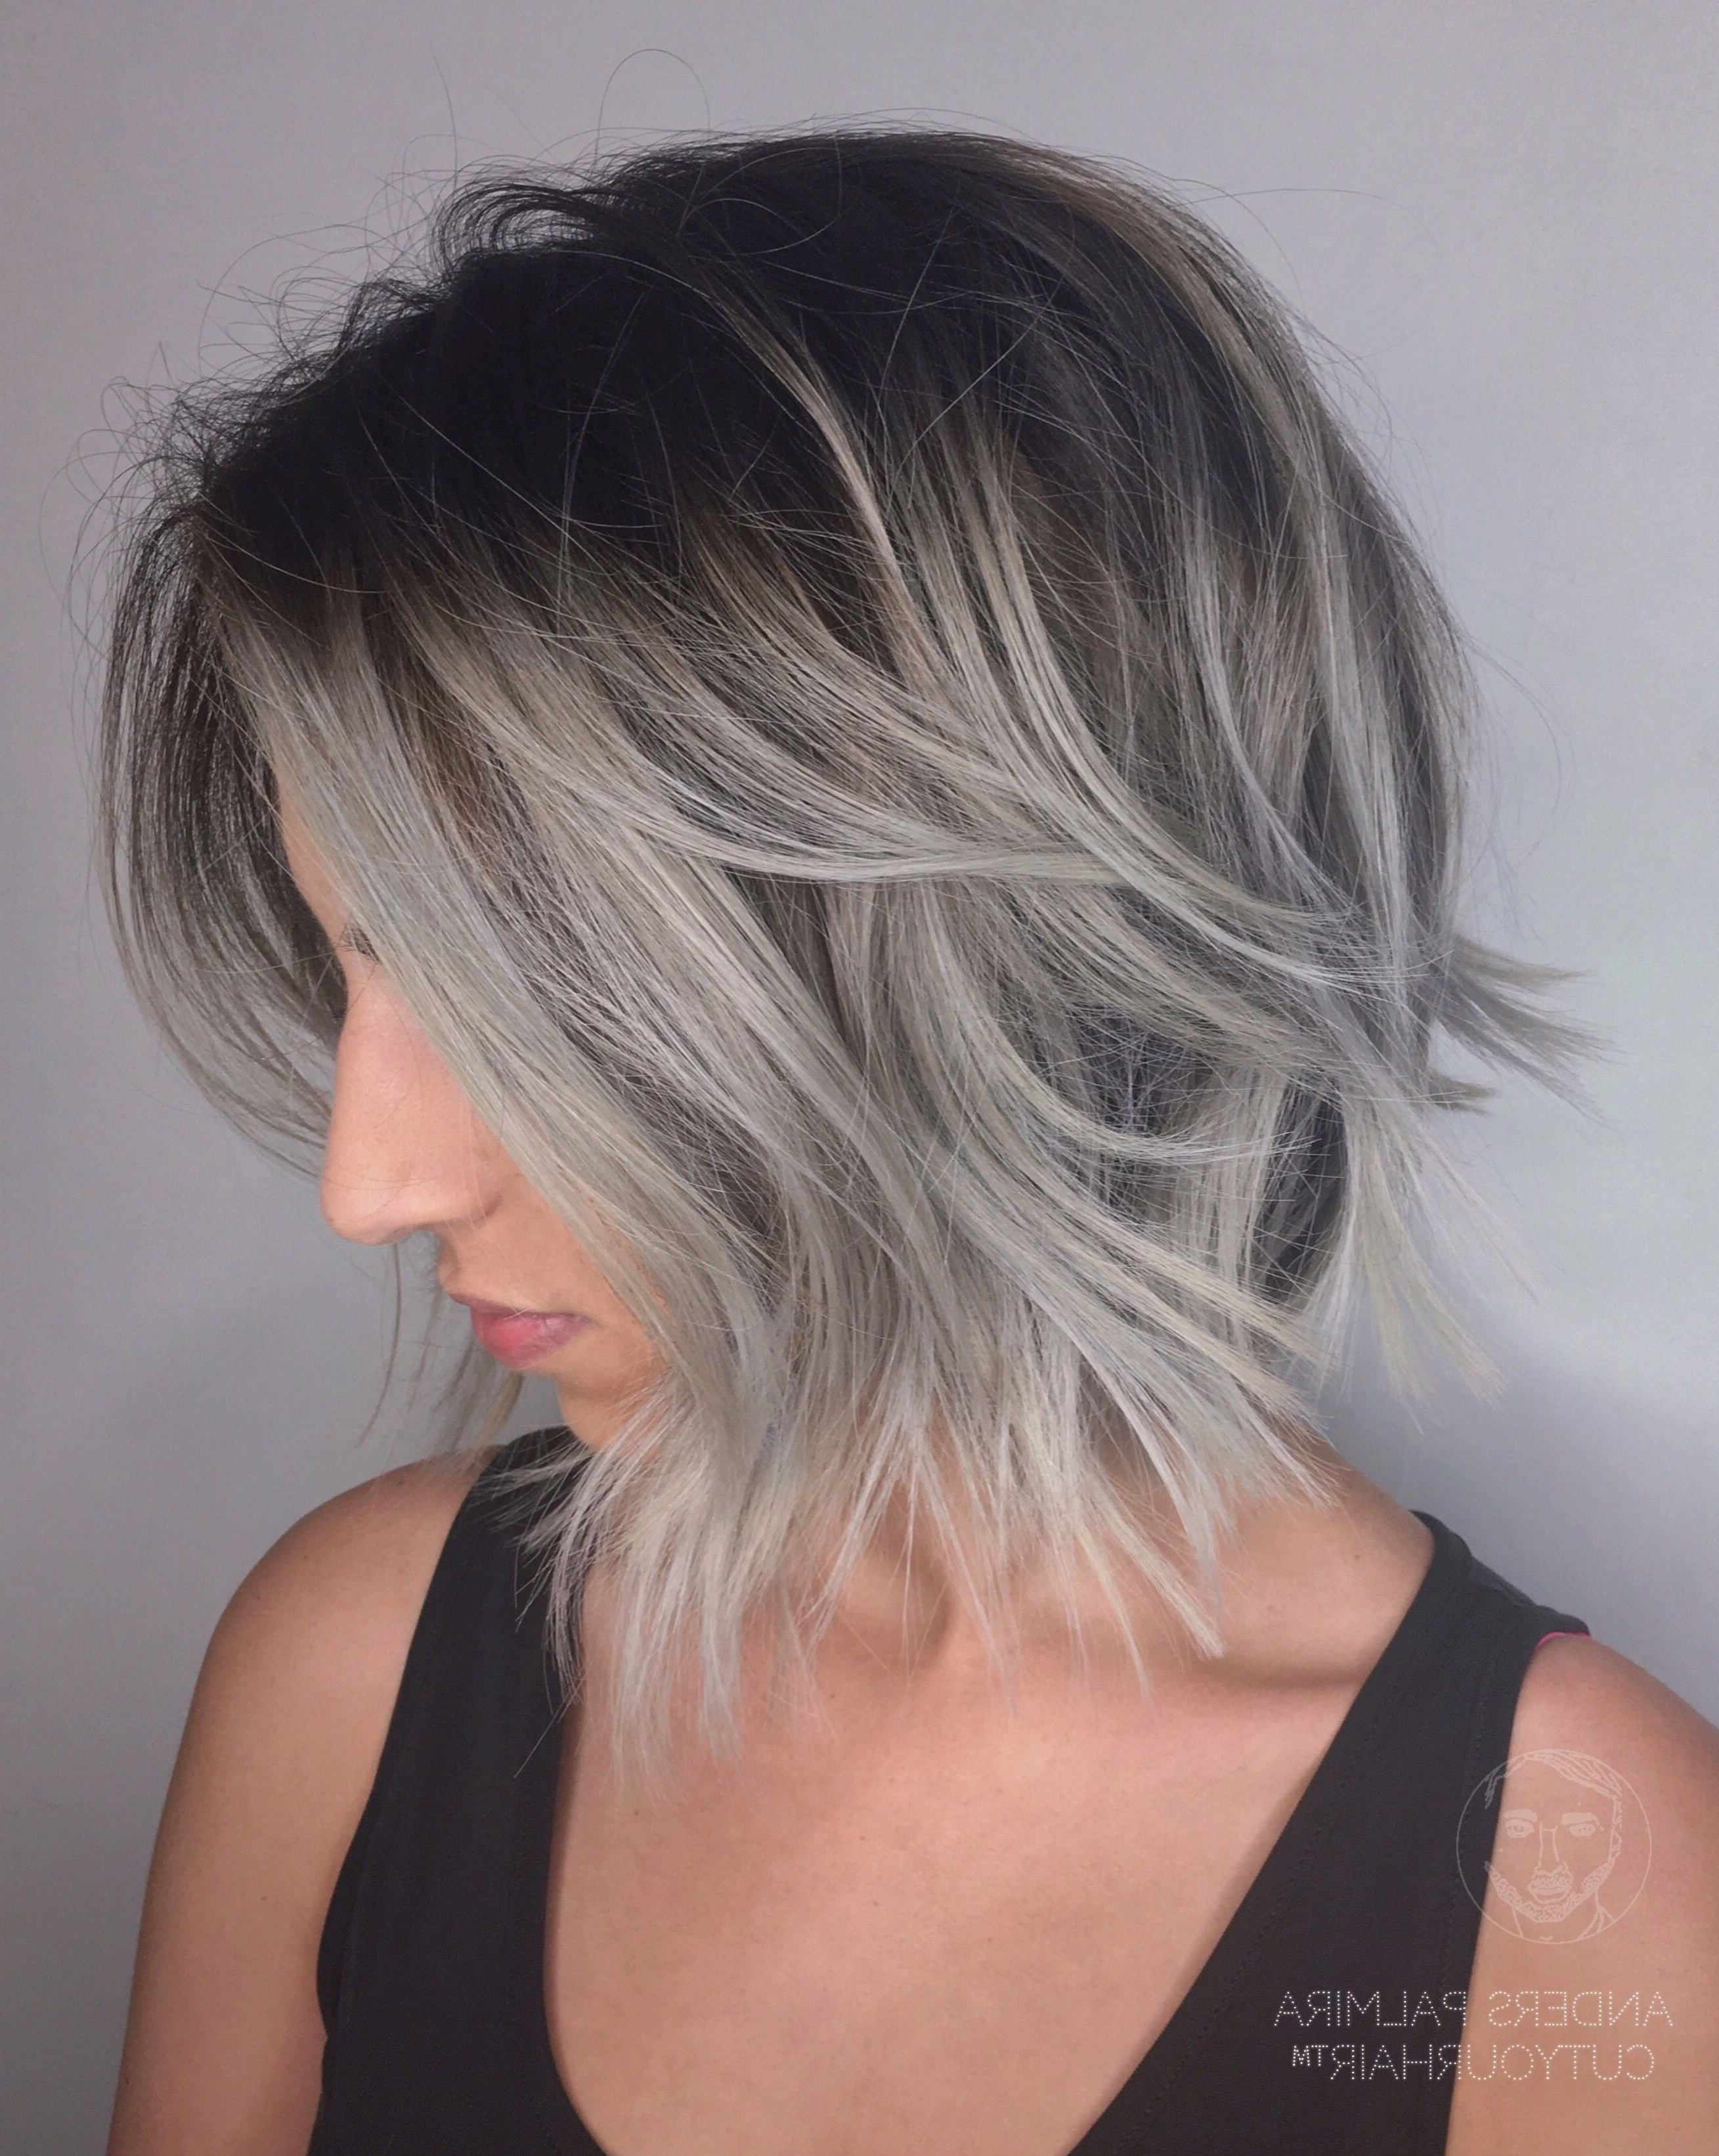 Aveda Wavy Long Blonde Bob Short Hair Beach Wave Medium Ideas Lob Pertaining To Most Recent Pastel And Ash Pixie Haircuts With Fused Layers (Gallery 7 of 15)